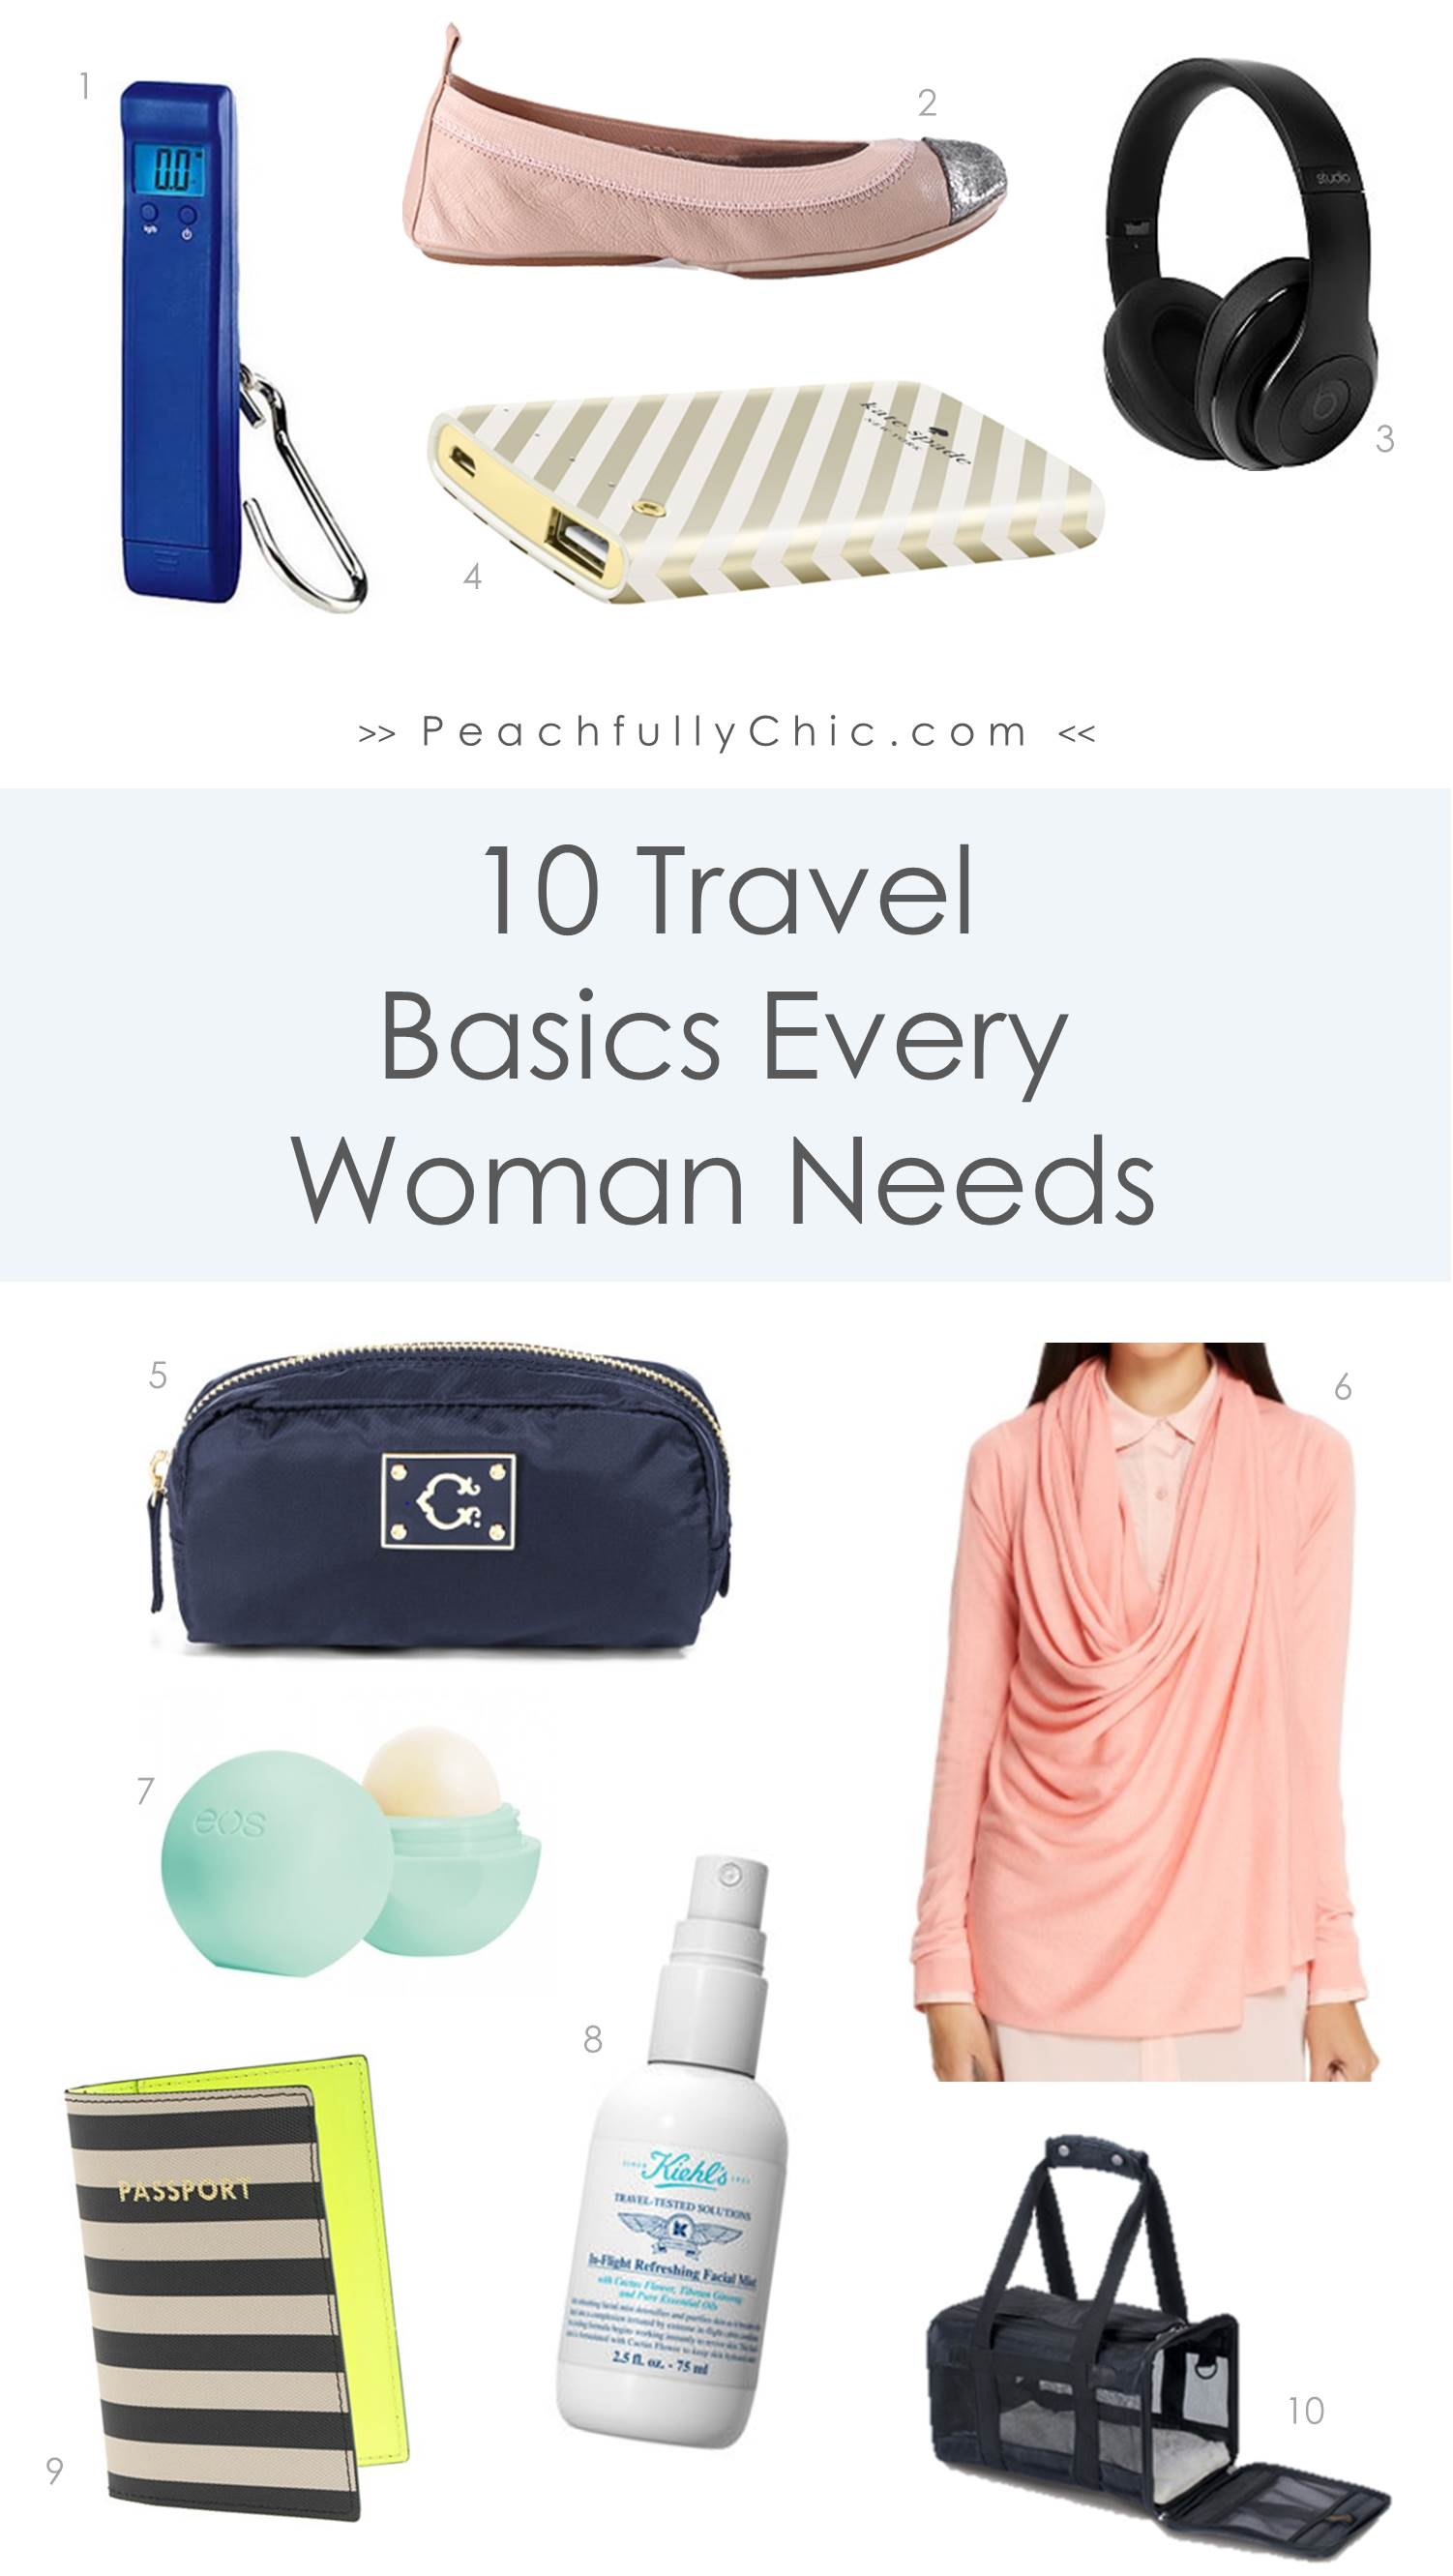 top-travel-items-every-woman-needs-peachfully-chic-2b